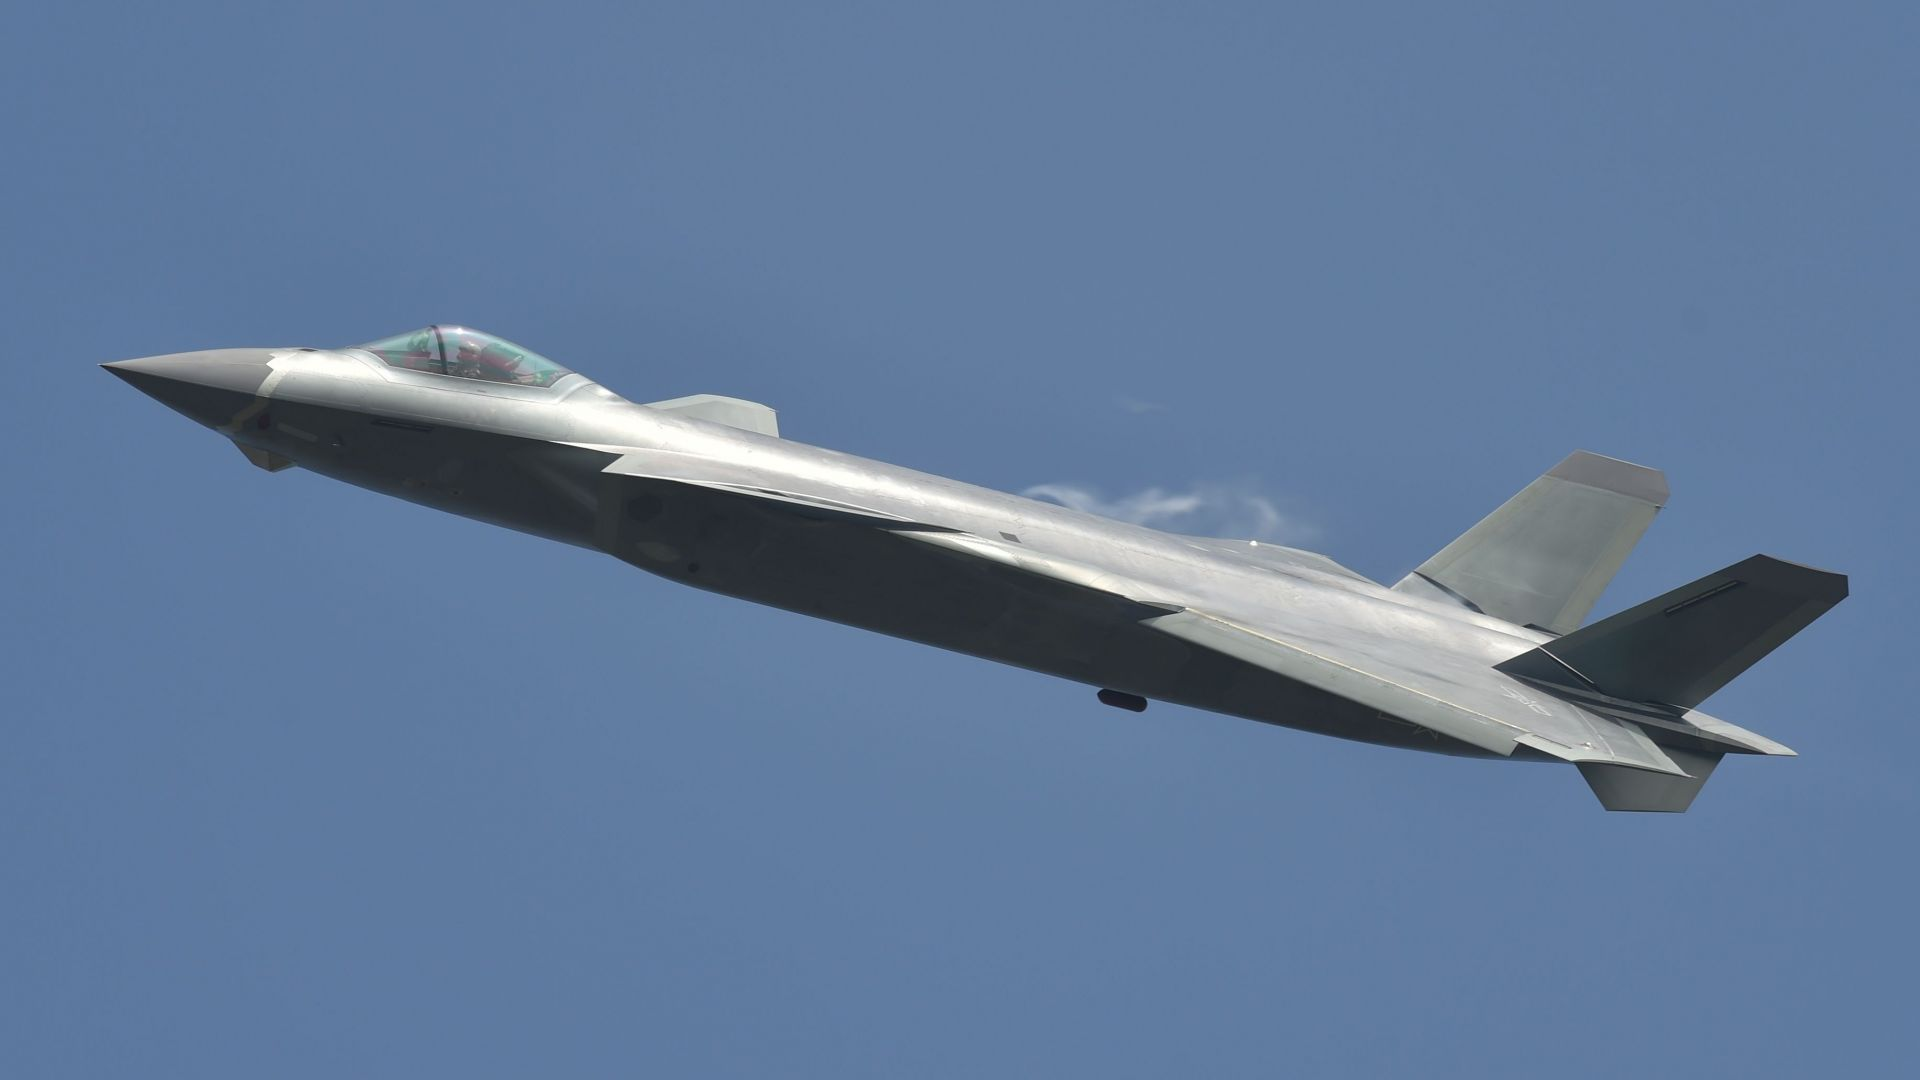 Shenyang J-20, China army, fighter aircraft, China air force (horizontal)